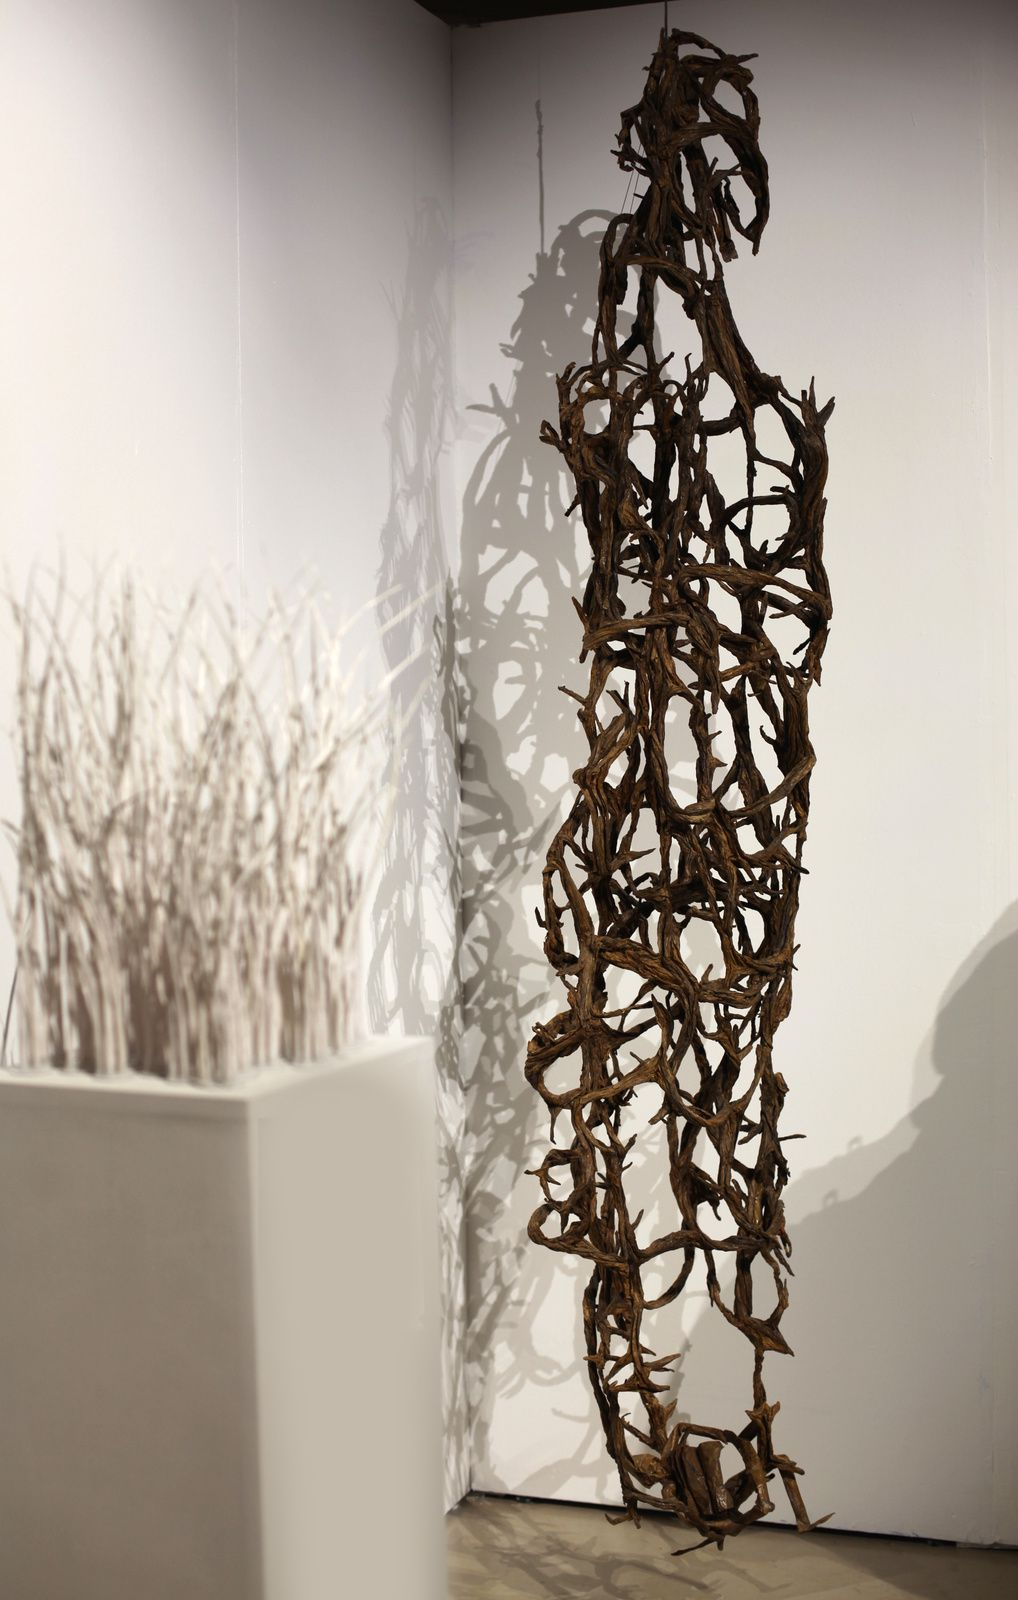 """Herbes folles"", 2014 et ""Mangrove"", 2012 de Frtiz JACQUET JUNIOR - Courtesy de l'Artiste © Photo Éric Simon"